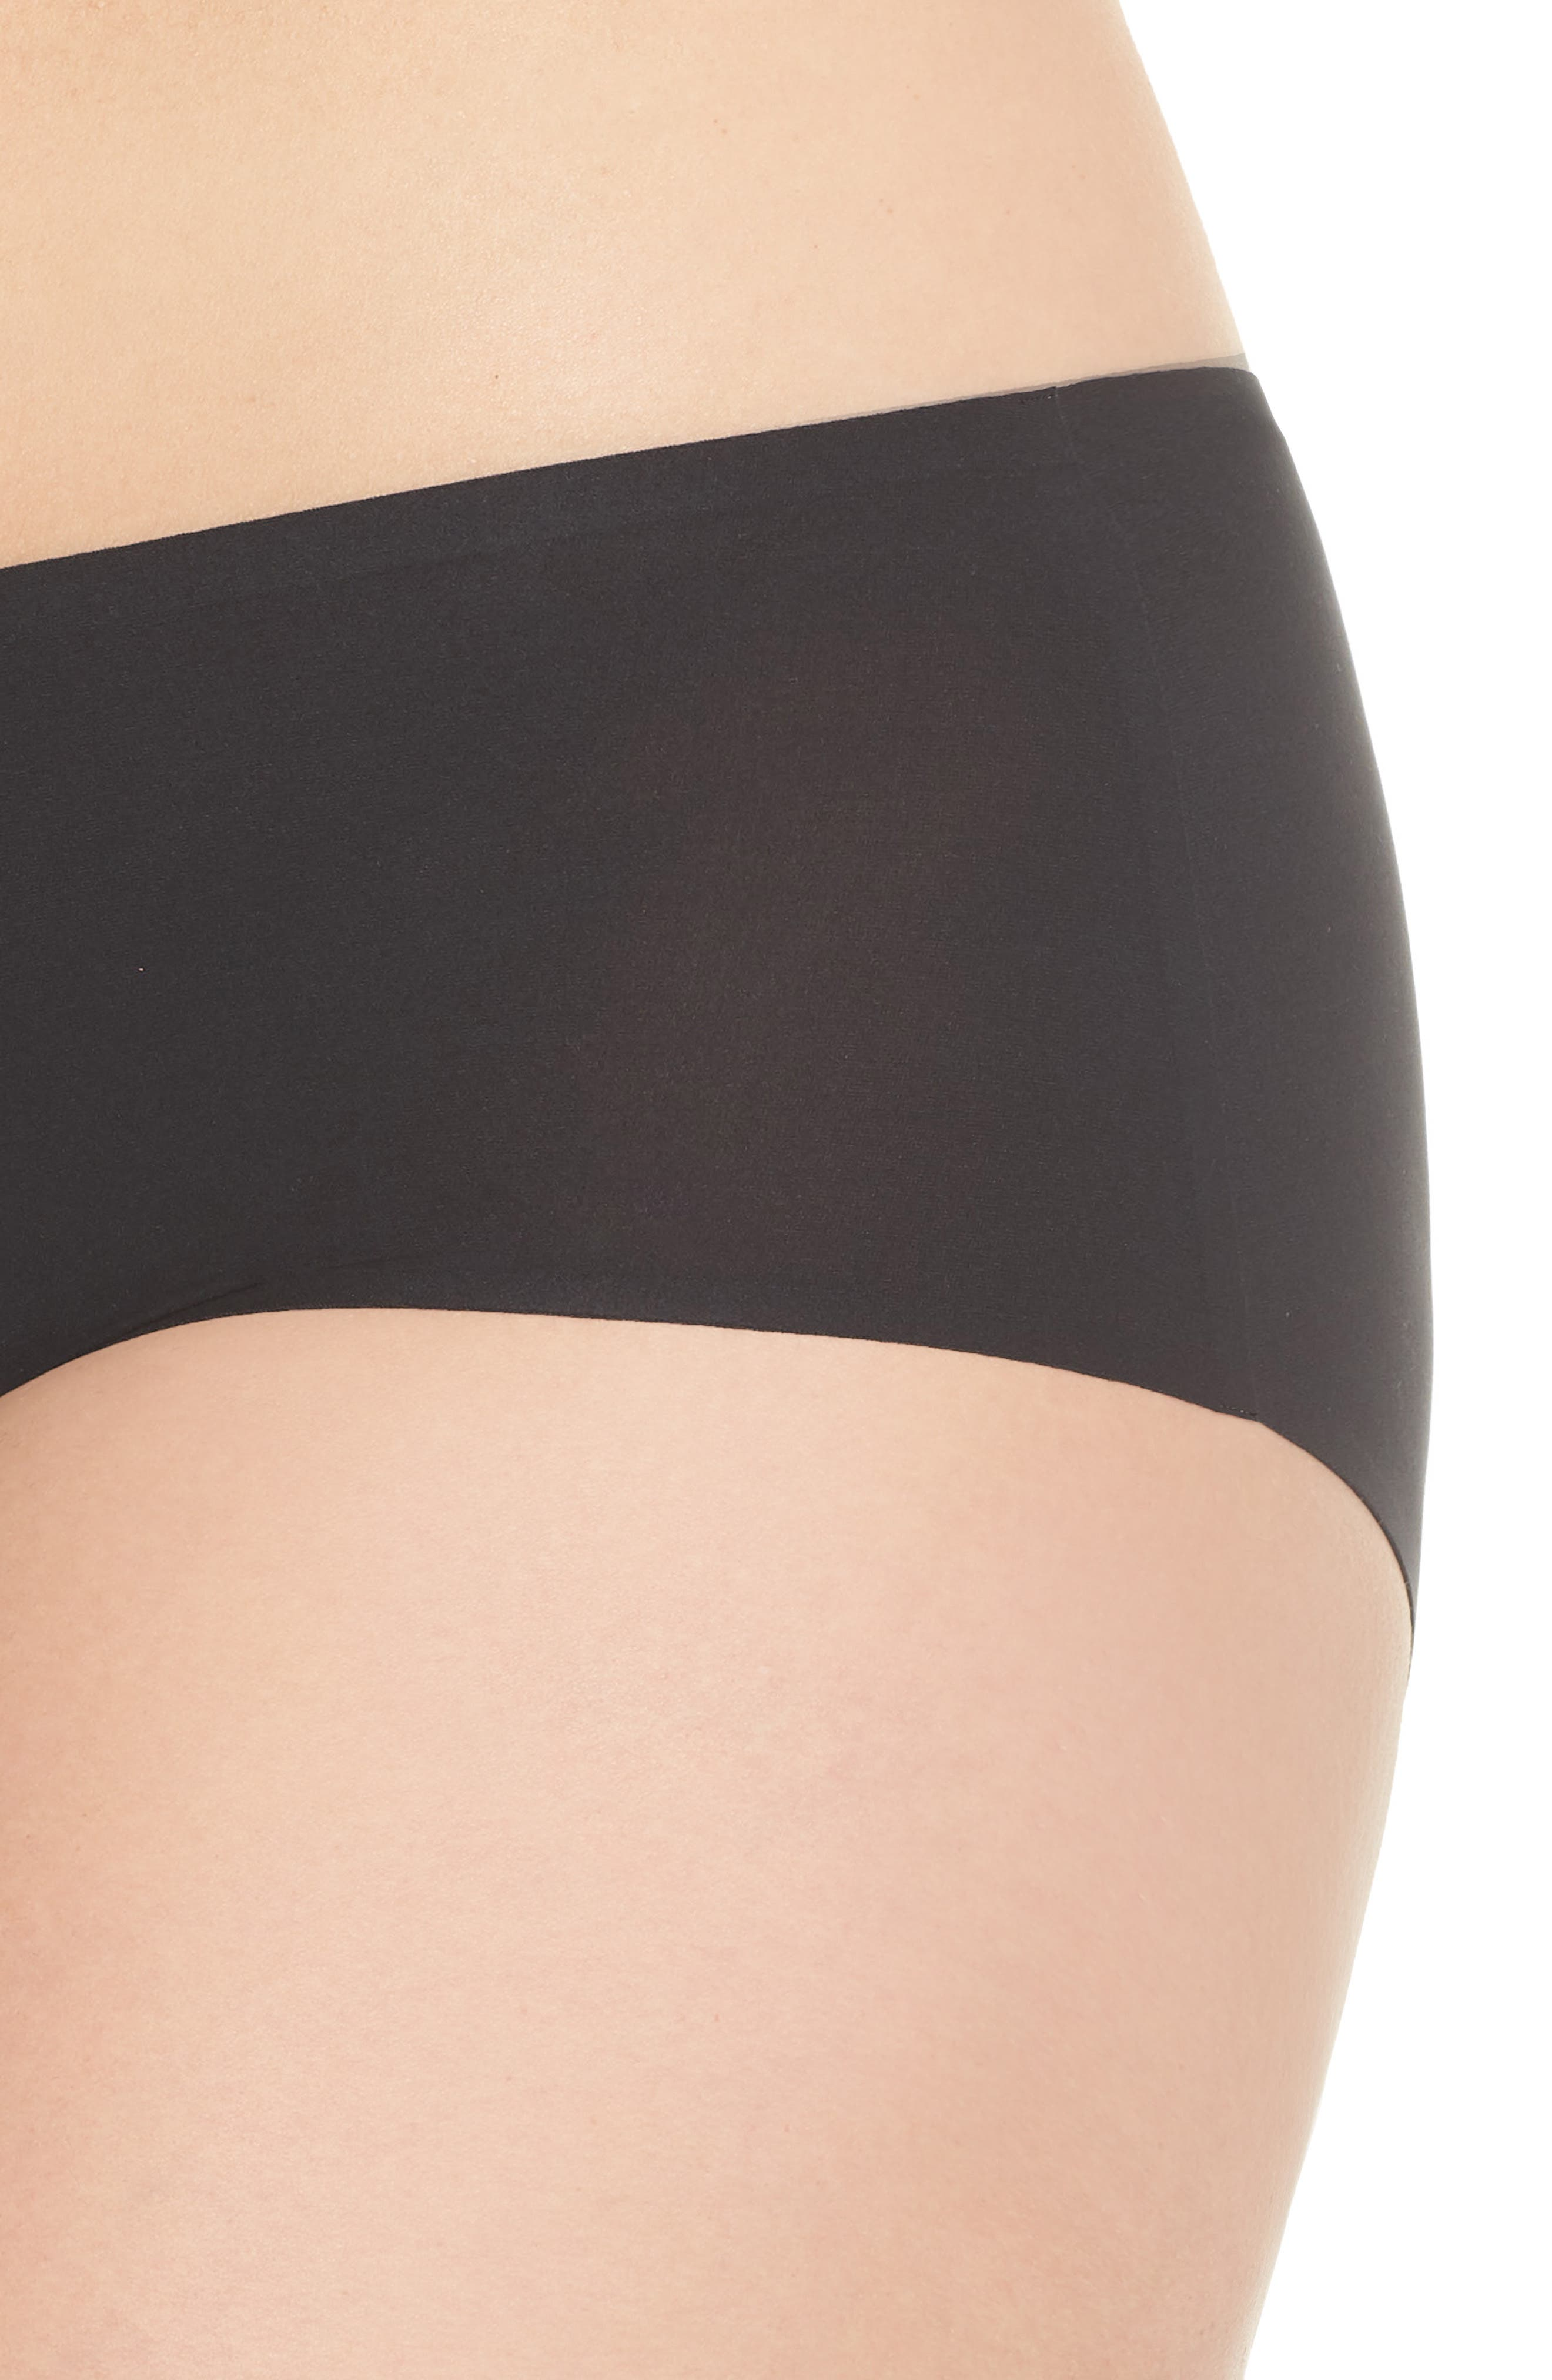 Soft Stretch Seamless Hipster Panties,                             Alternate thumbnail 4, color,                             BLACK